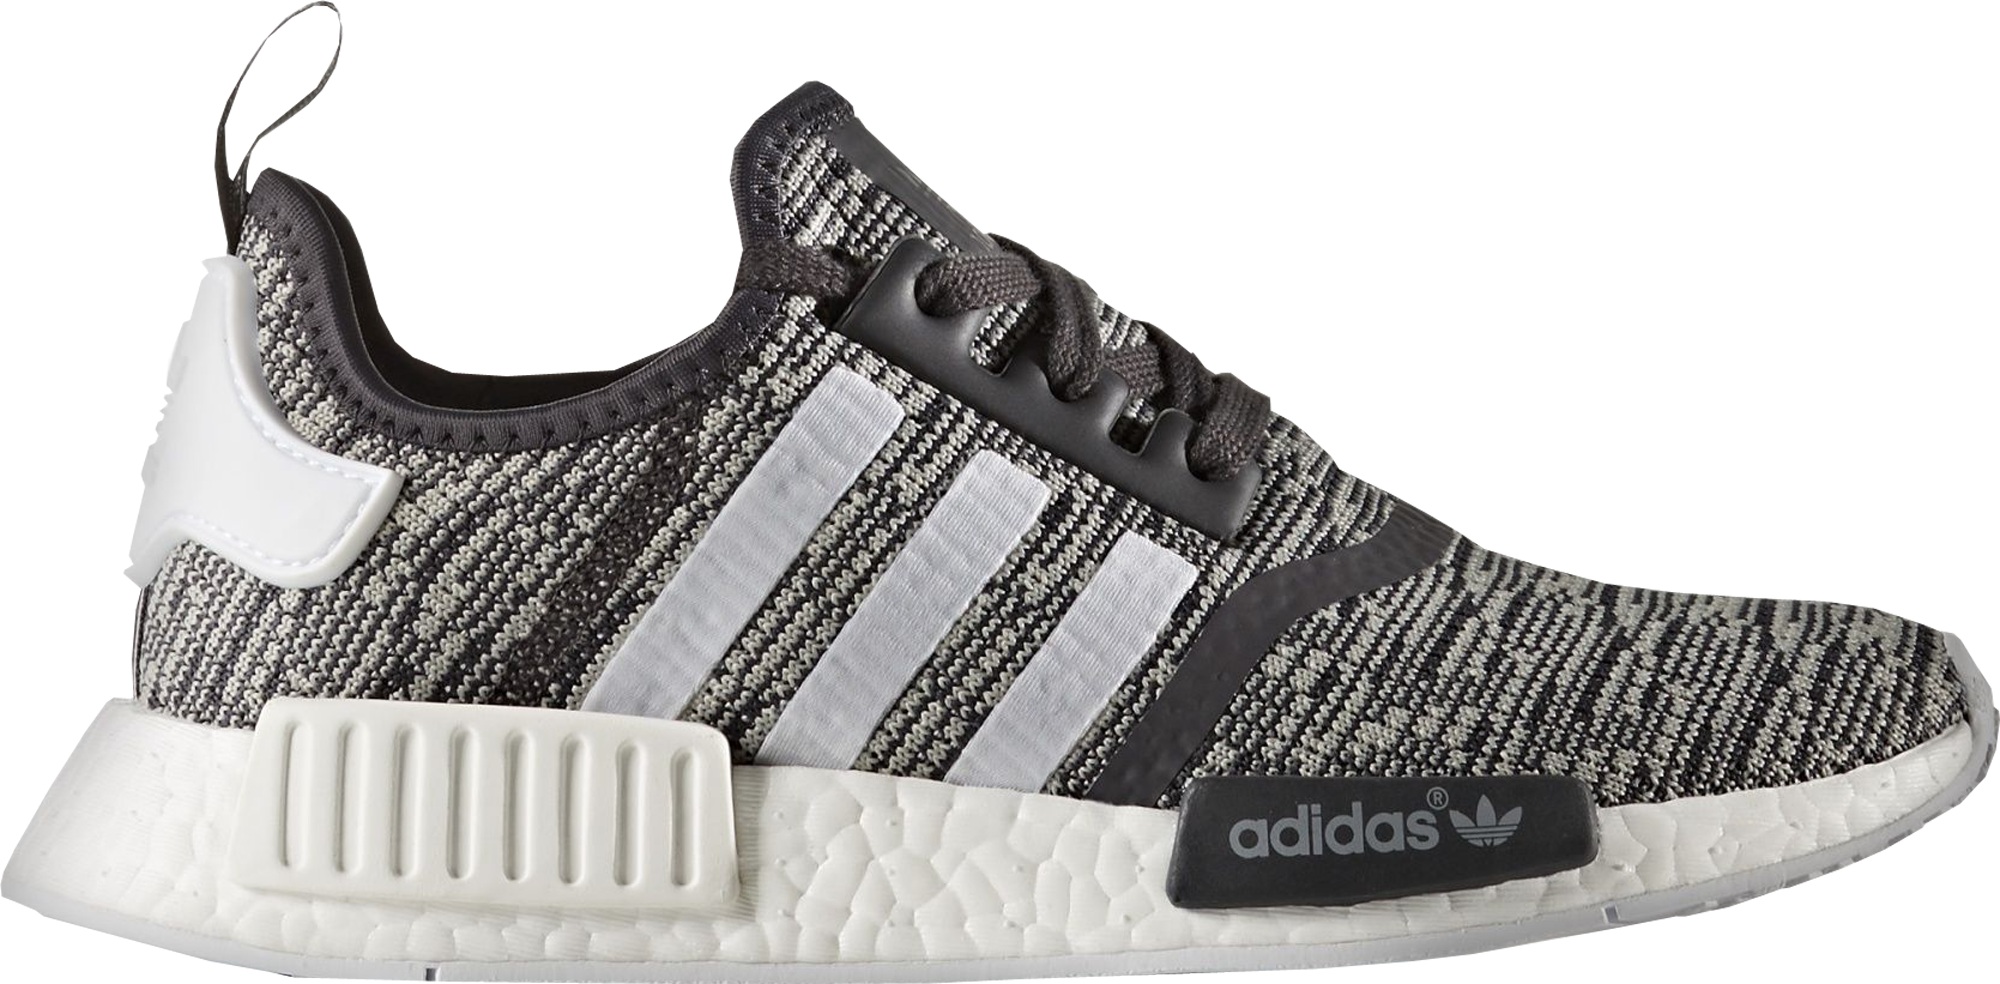 Adidas NMD R1 Glitch Camo Core Black Gray Red BB 2884